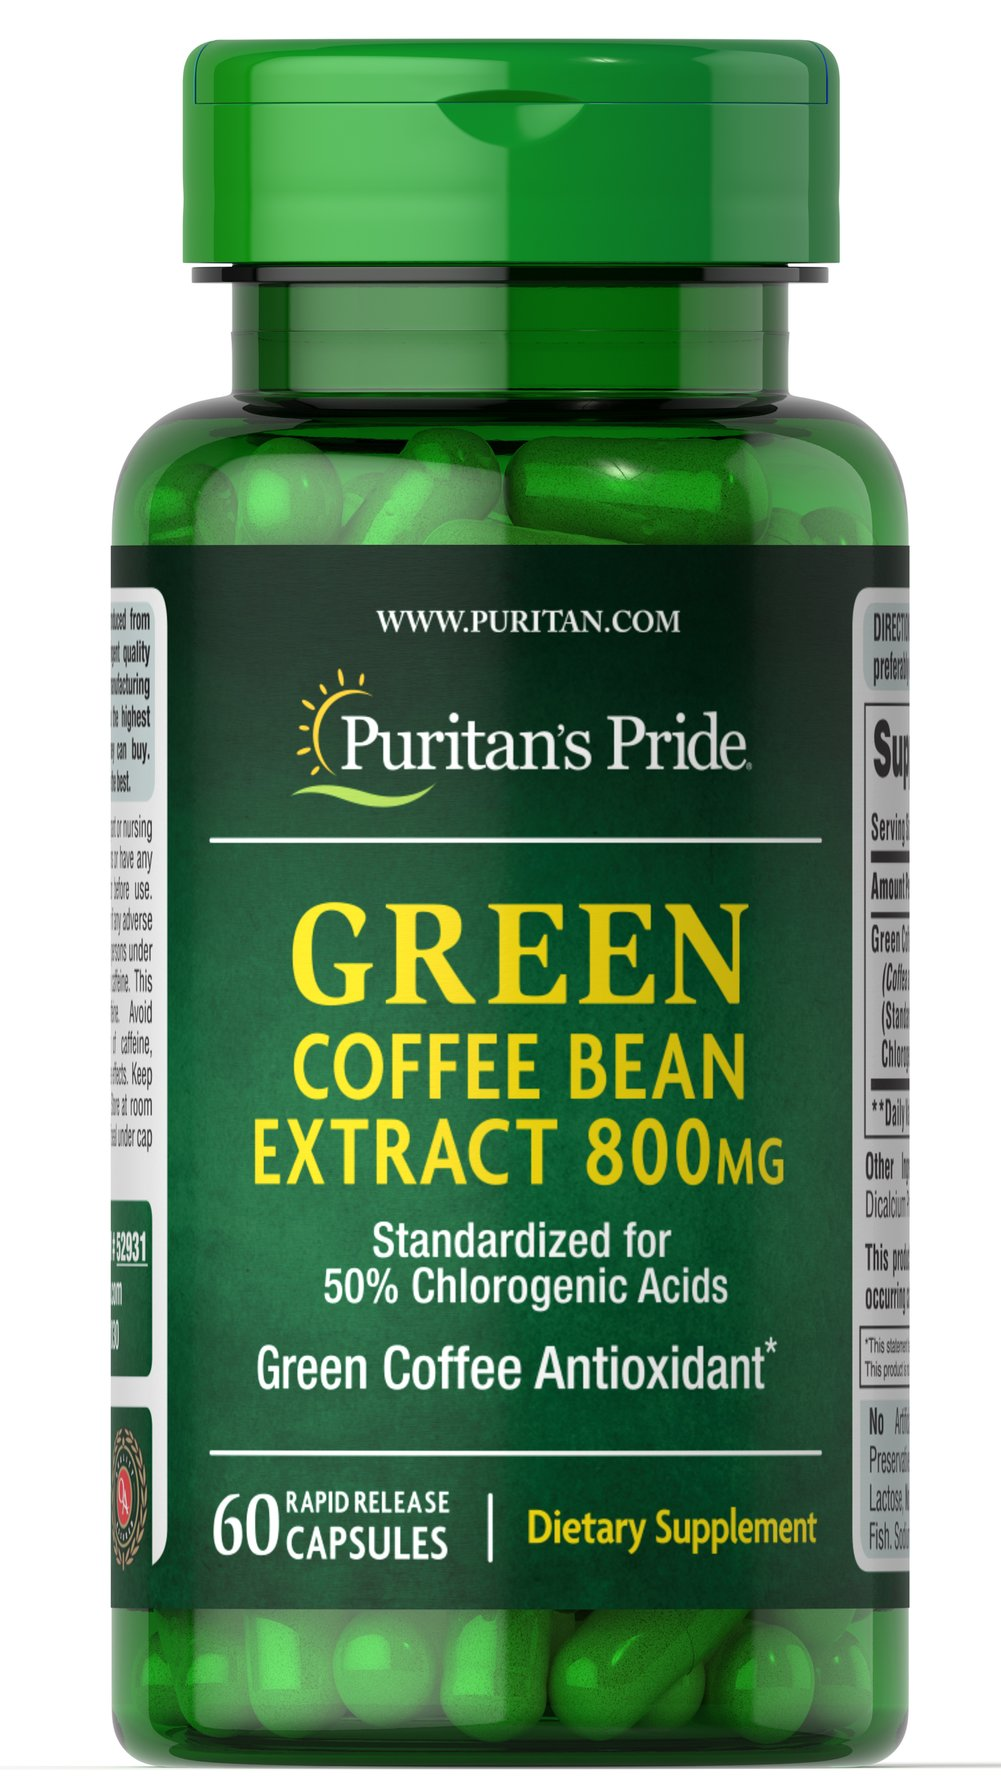 Green Coffee Bean Extract 800 mg <p></p><ul><li>Green Coffee Bean contains antioxidant properties.**</li><li>Standardized for 45% Chlorogenic Acids</li><li>60 Rapid Release Capsules</li></ul> 60 Capsules 800 mg $33.99